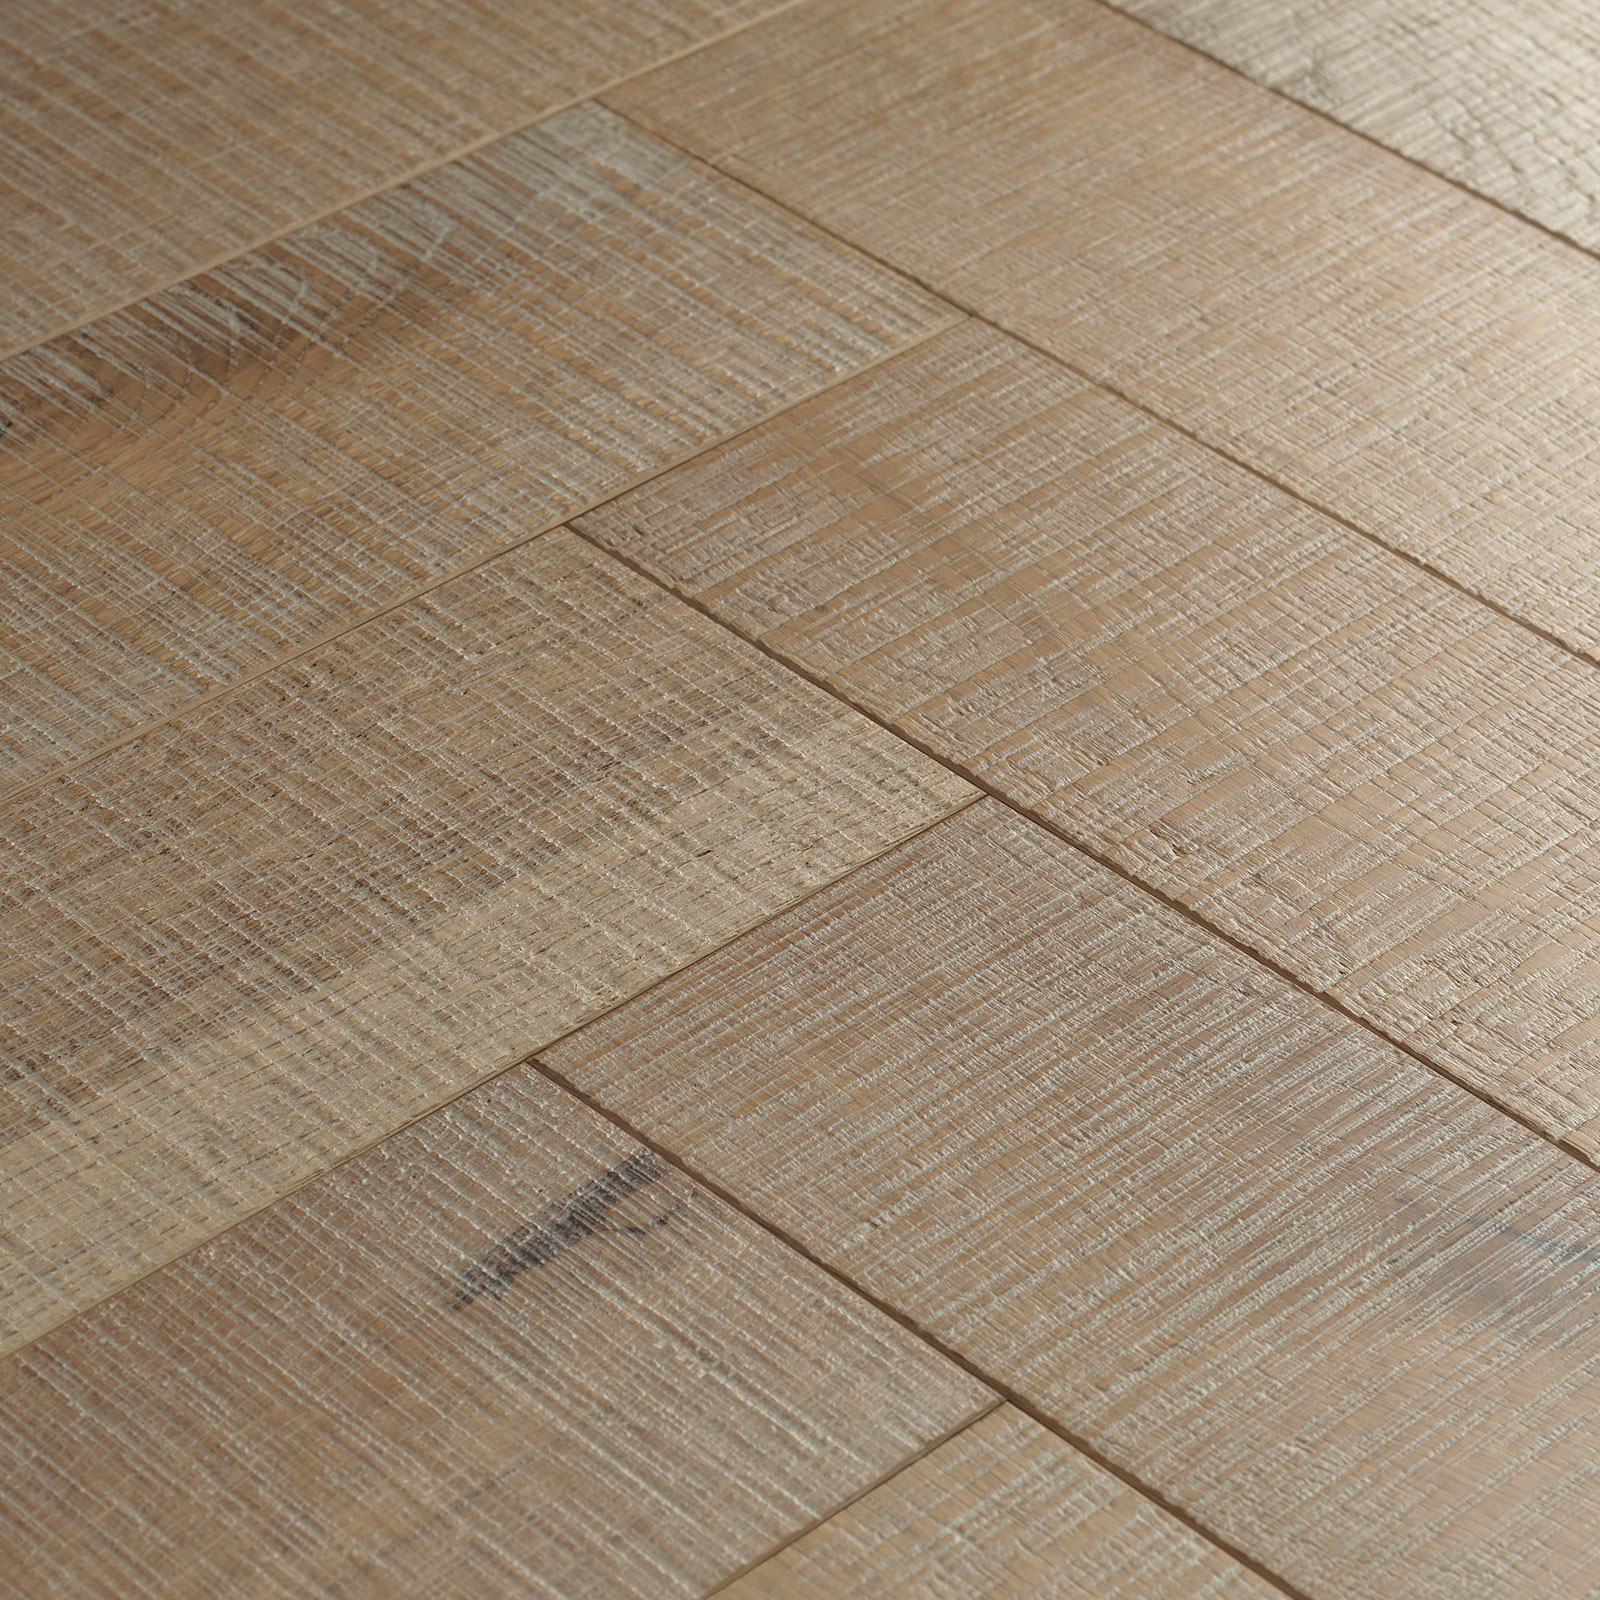 Goodrich Salted Oak Parquet Flooring Woodpecker Flooring